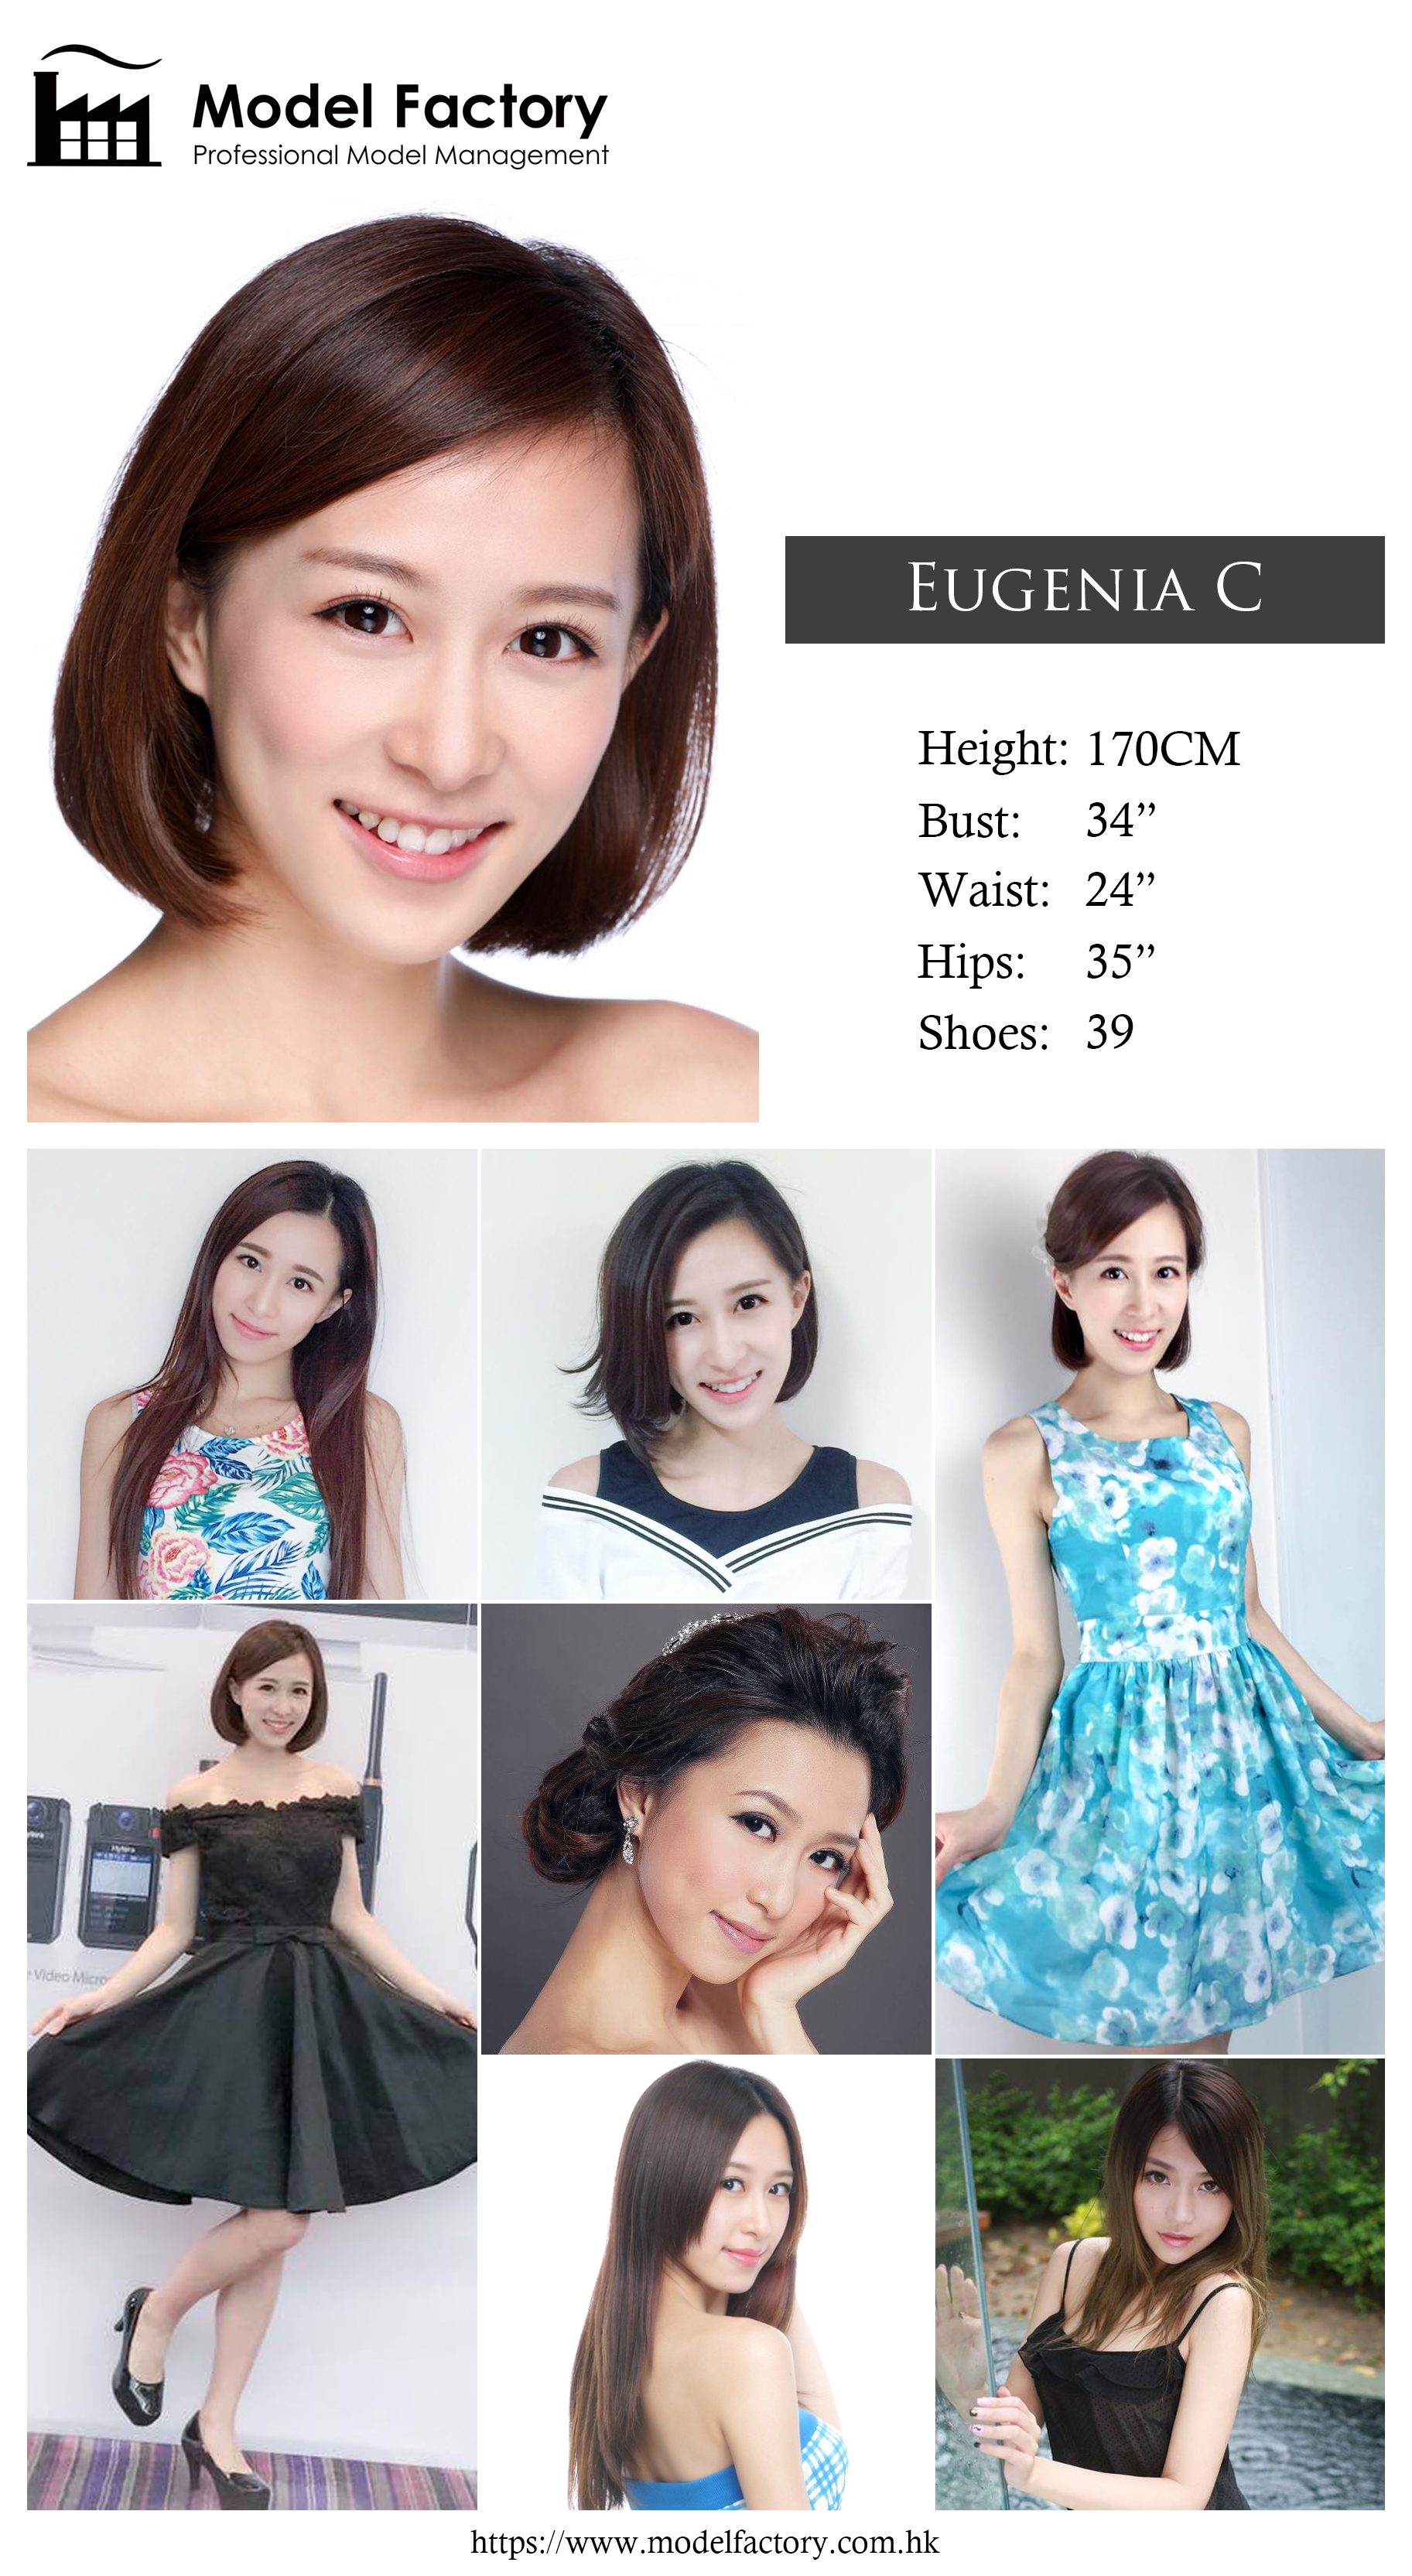 Model Factory Hong Kong Female Model EugeniaC